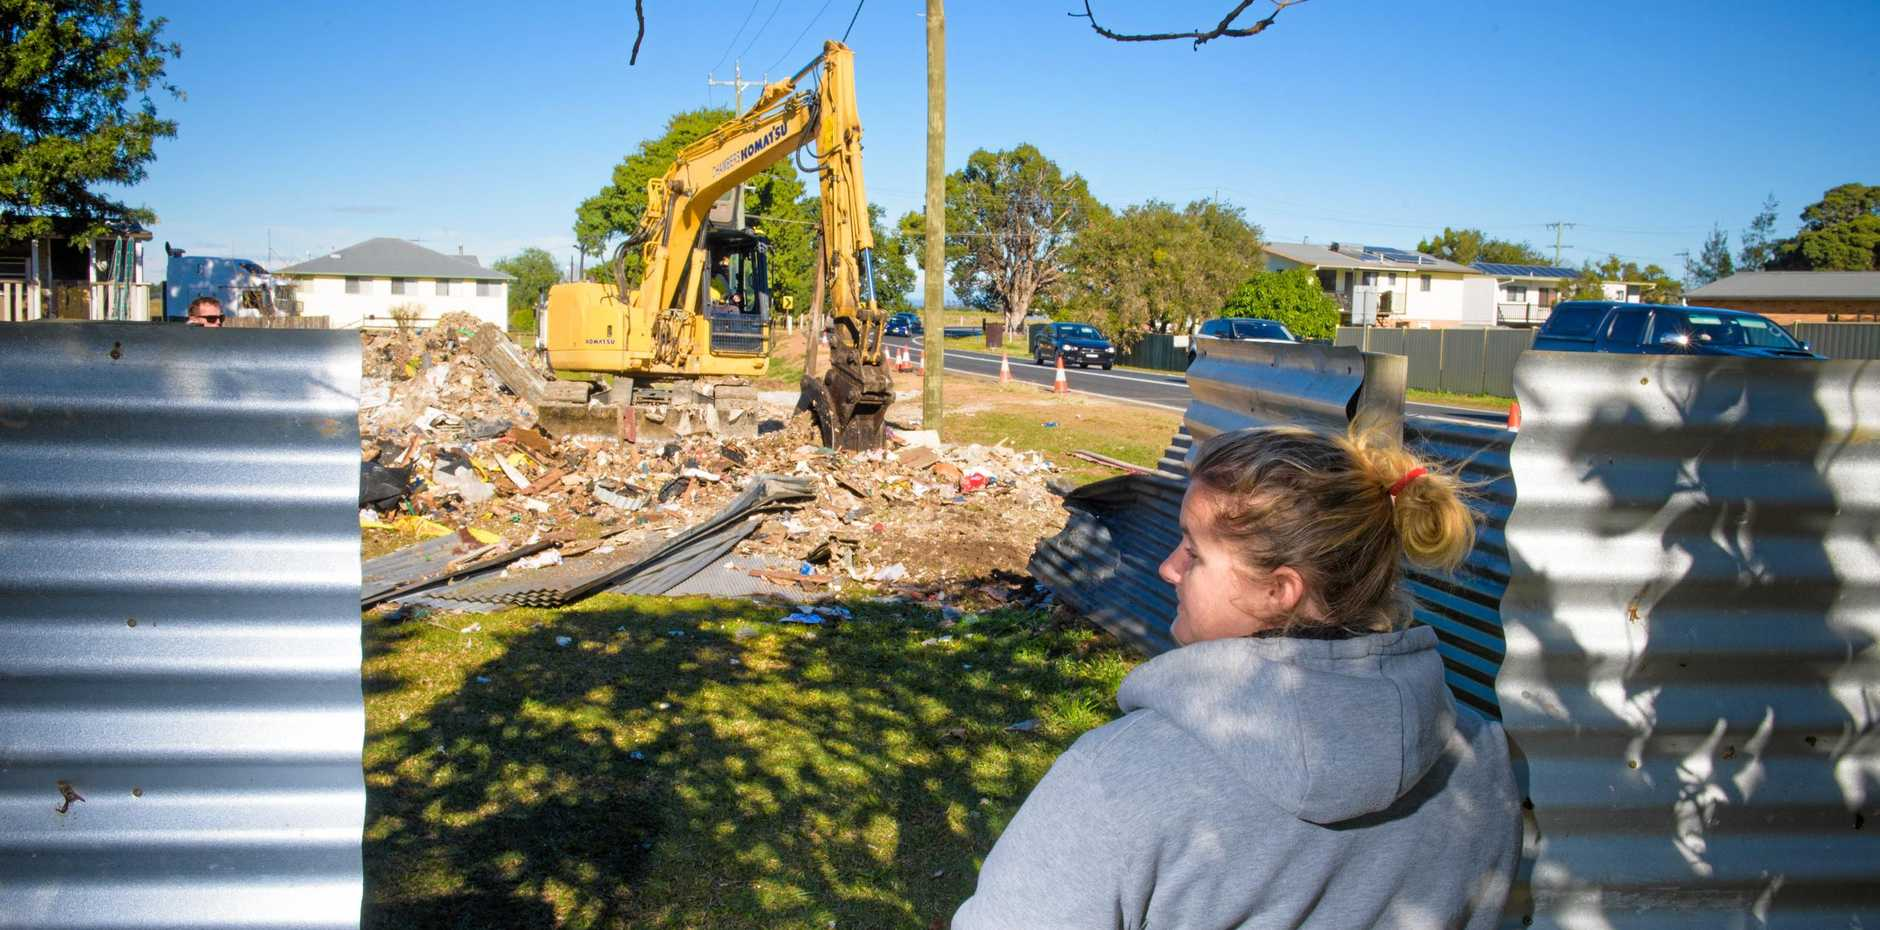 Resident Krystal Brown looks at where her fence used to be after it was destroyed when a truck came through it on Monday night.